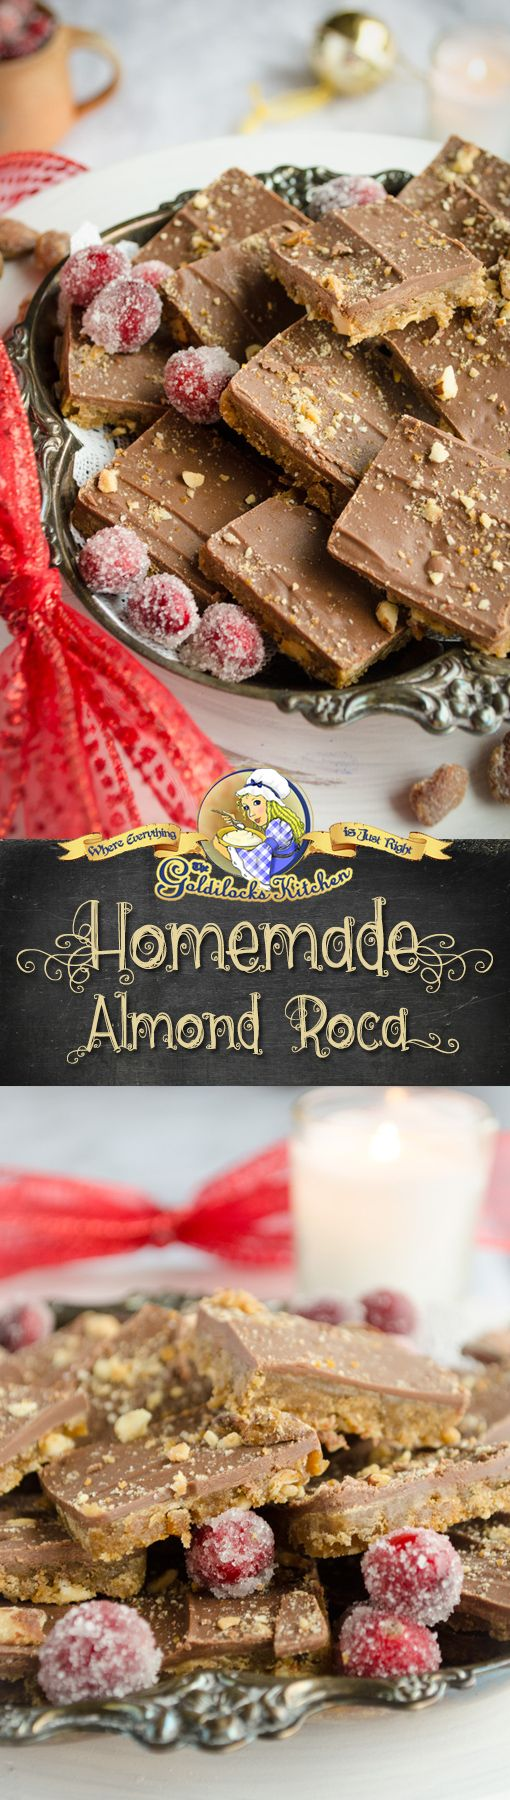 Be sure to add this Homemade Almond Roca dessert recipe to your holiday treat list. Once you see how easy they are to make, they'll become an annual tradition for beautiful and delicious little gifts.